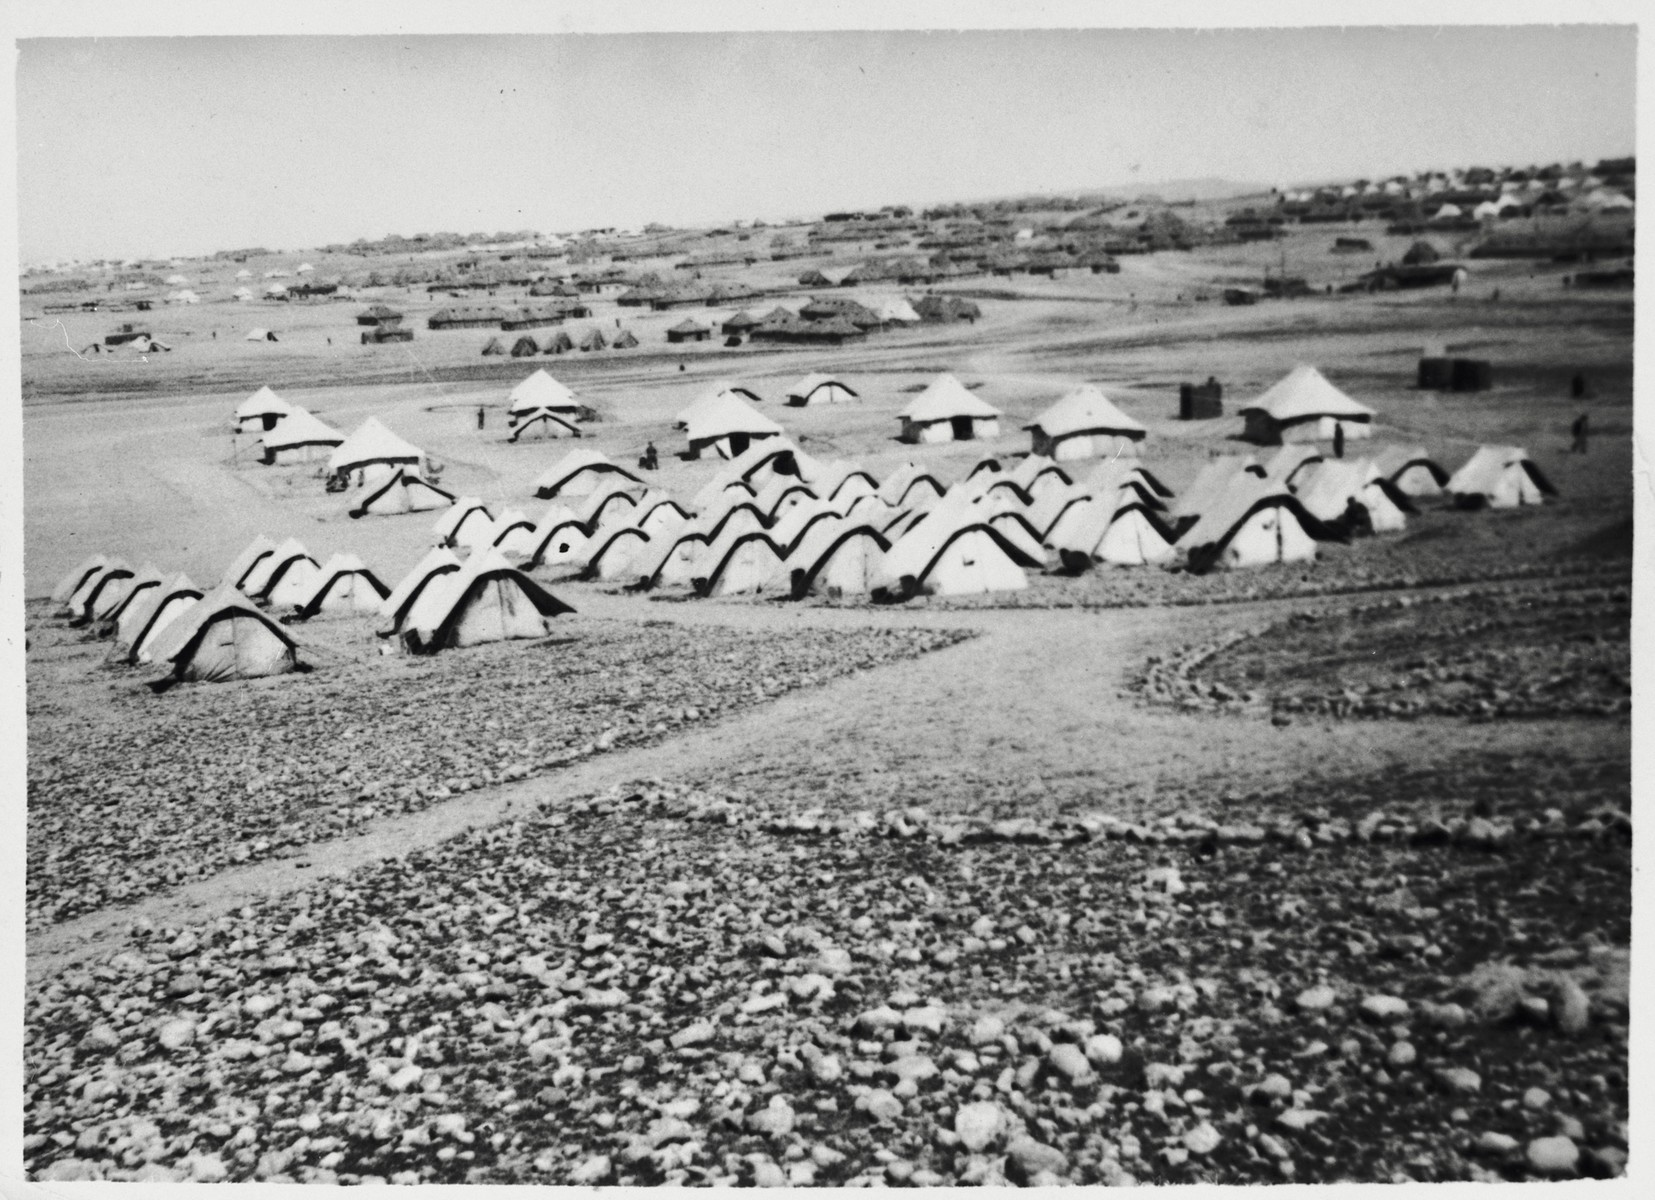 View of the military camp in the Iraqi desert where the 2nd Polish Corps (Anders Army) trained from the summer of 1942 until the summer of 1943.